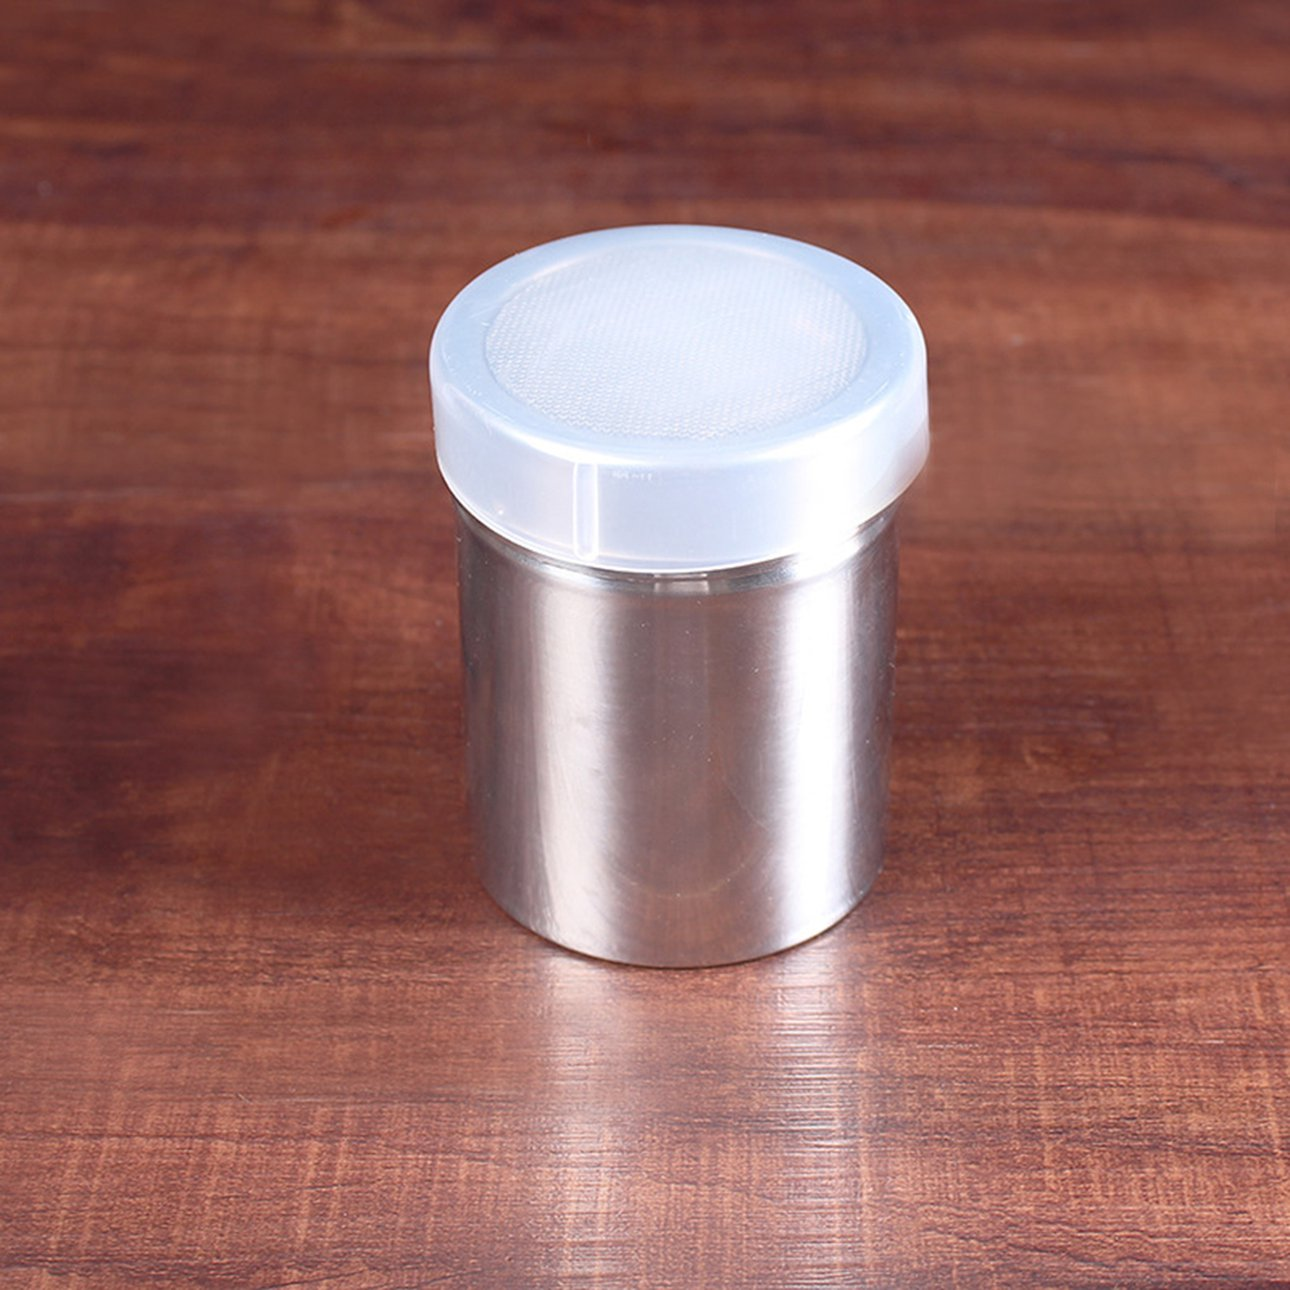 New 304 Stainless Steel Mini storage tank Seasoning Spray Bottle with stay fresh sealed lid for Cocoa Cinnamon Sugar Gauzer